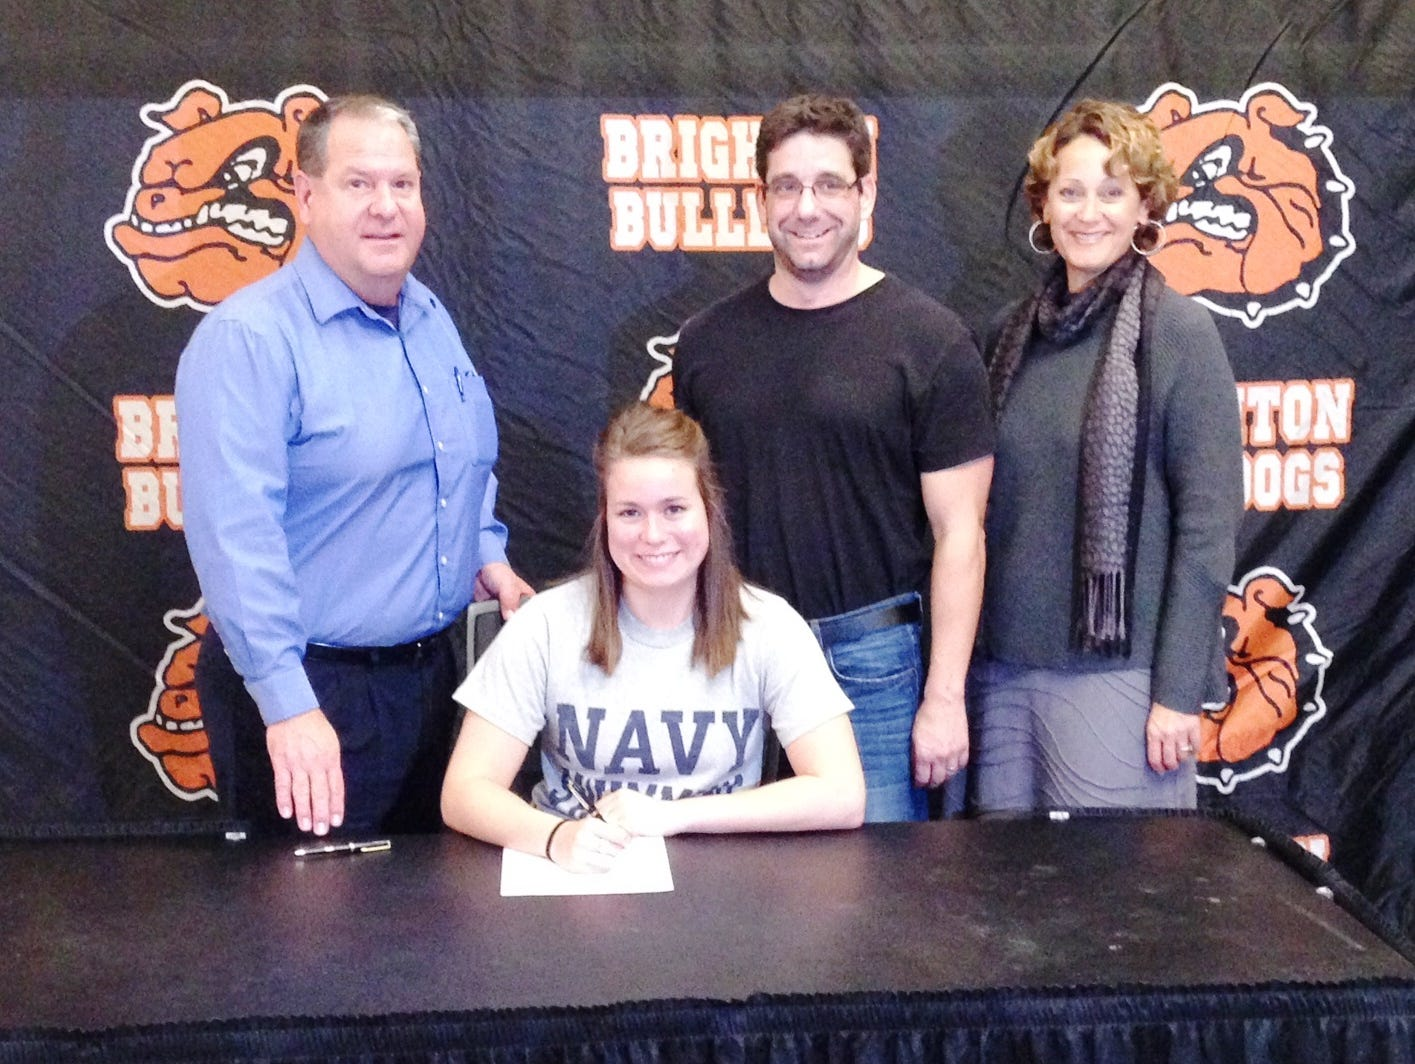 Brighton's McKenna Resconich will attend Navy next year. She's pictured here signing next to her coach Jason Black, immediate right, her dad Lou, left, and her mom Kim, right.